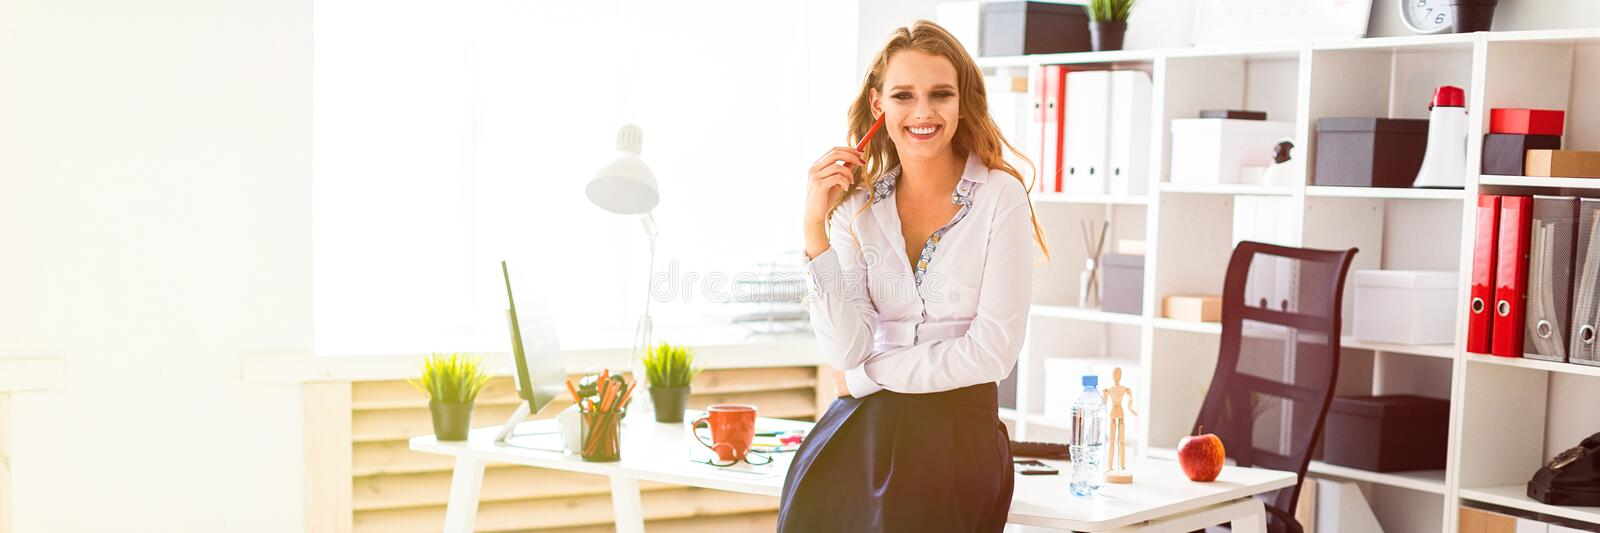 A beautiful young girl stands near a table in the office and holds a red pencil in her hands. royalty free stock images